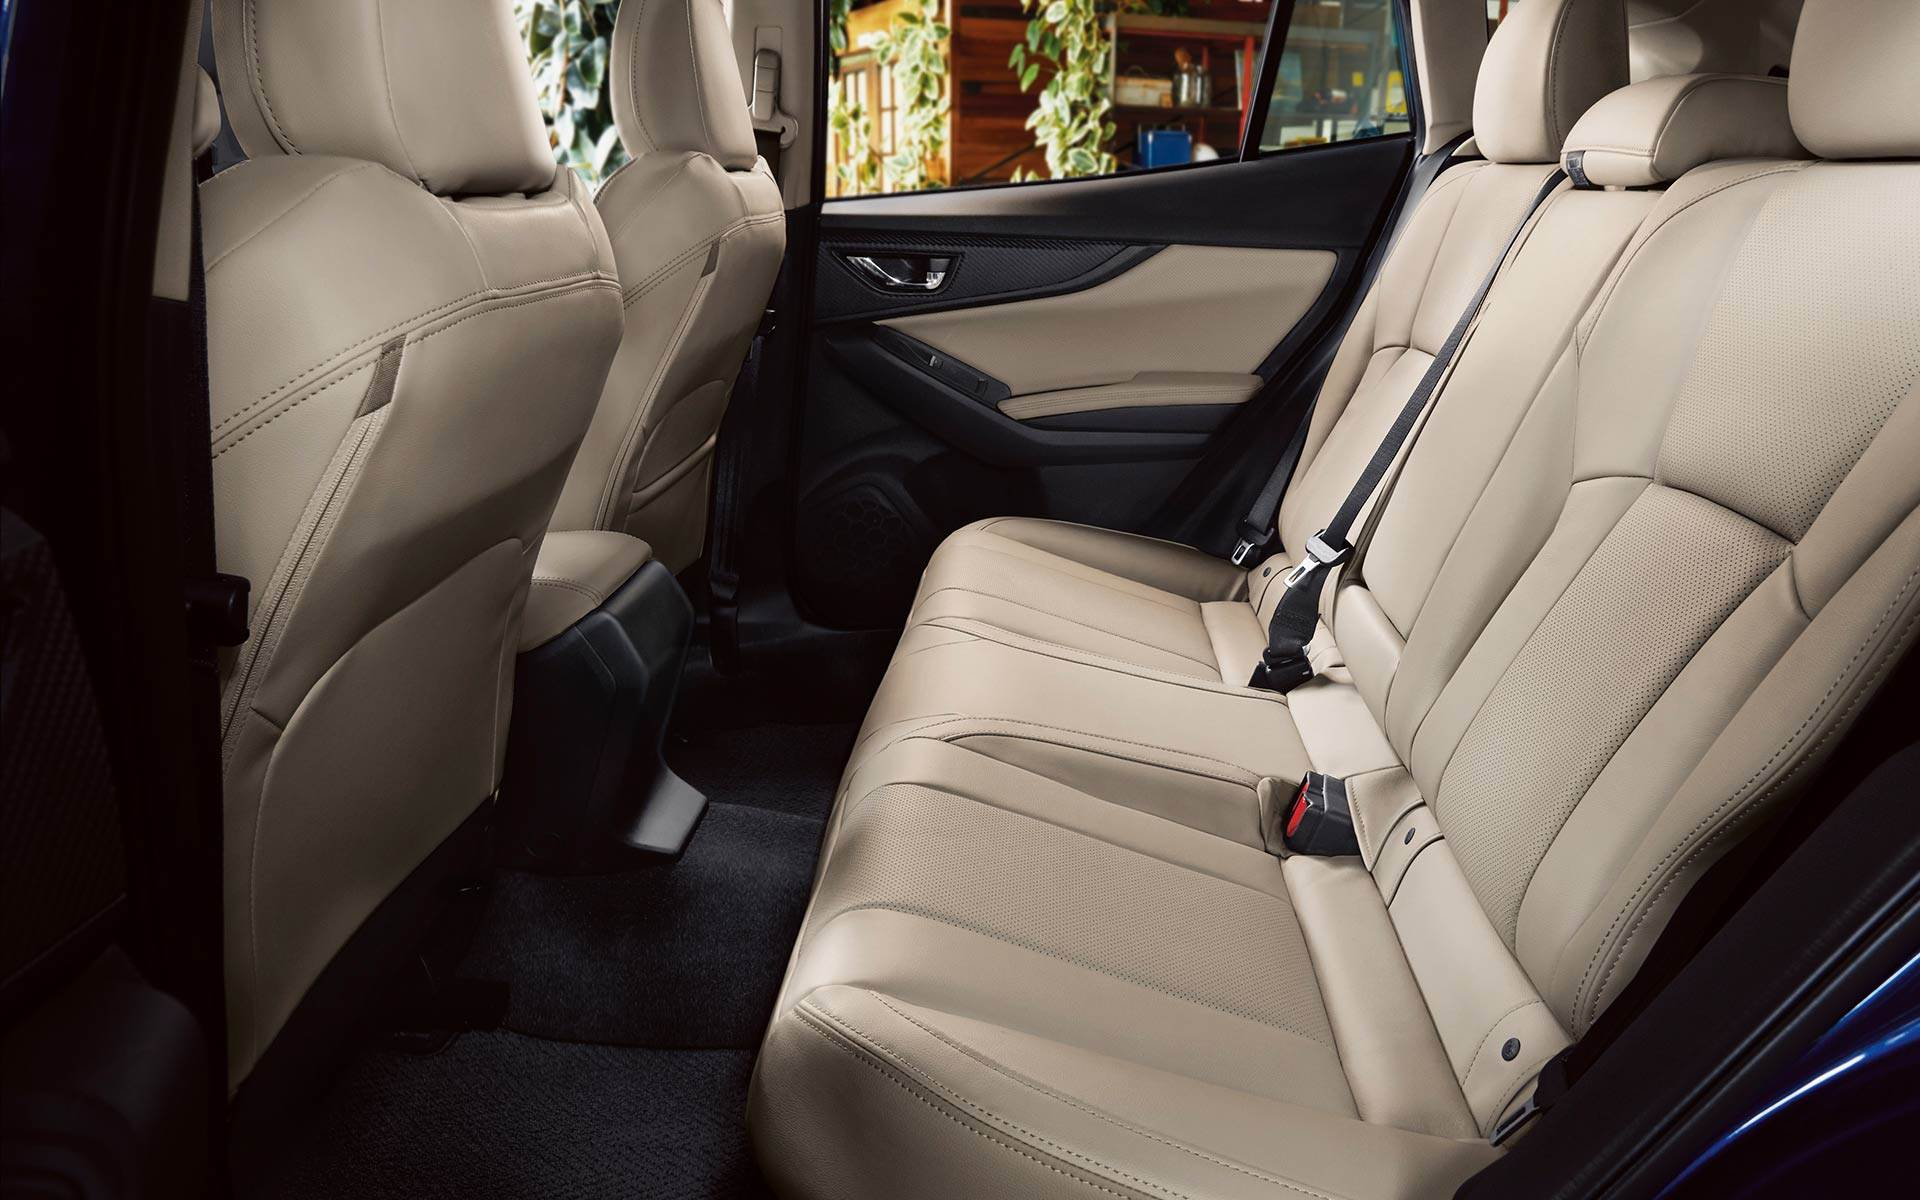 Right-Sized, High-Quality, Comfortable Interior